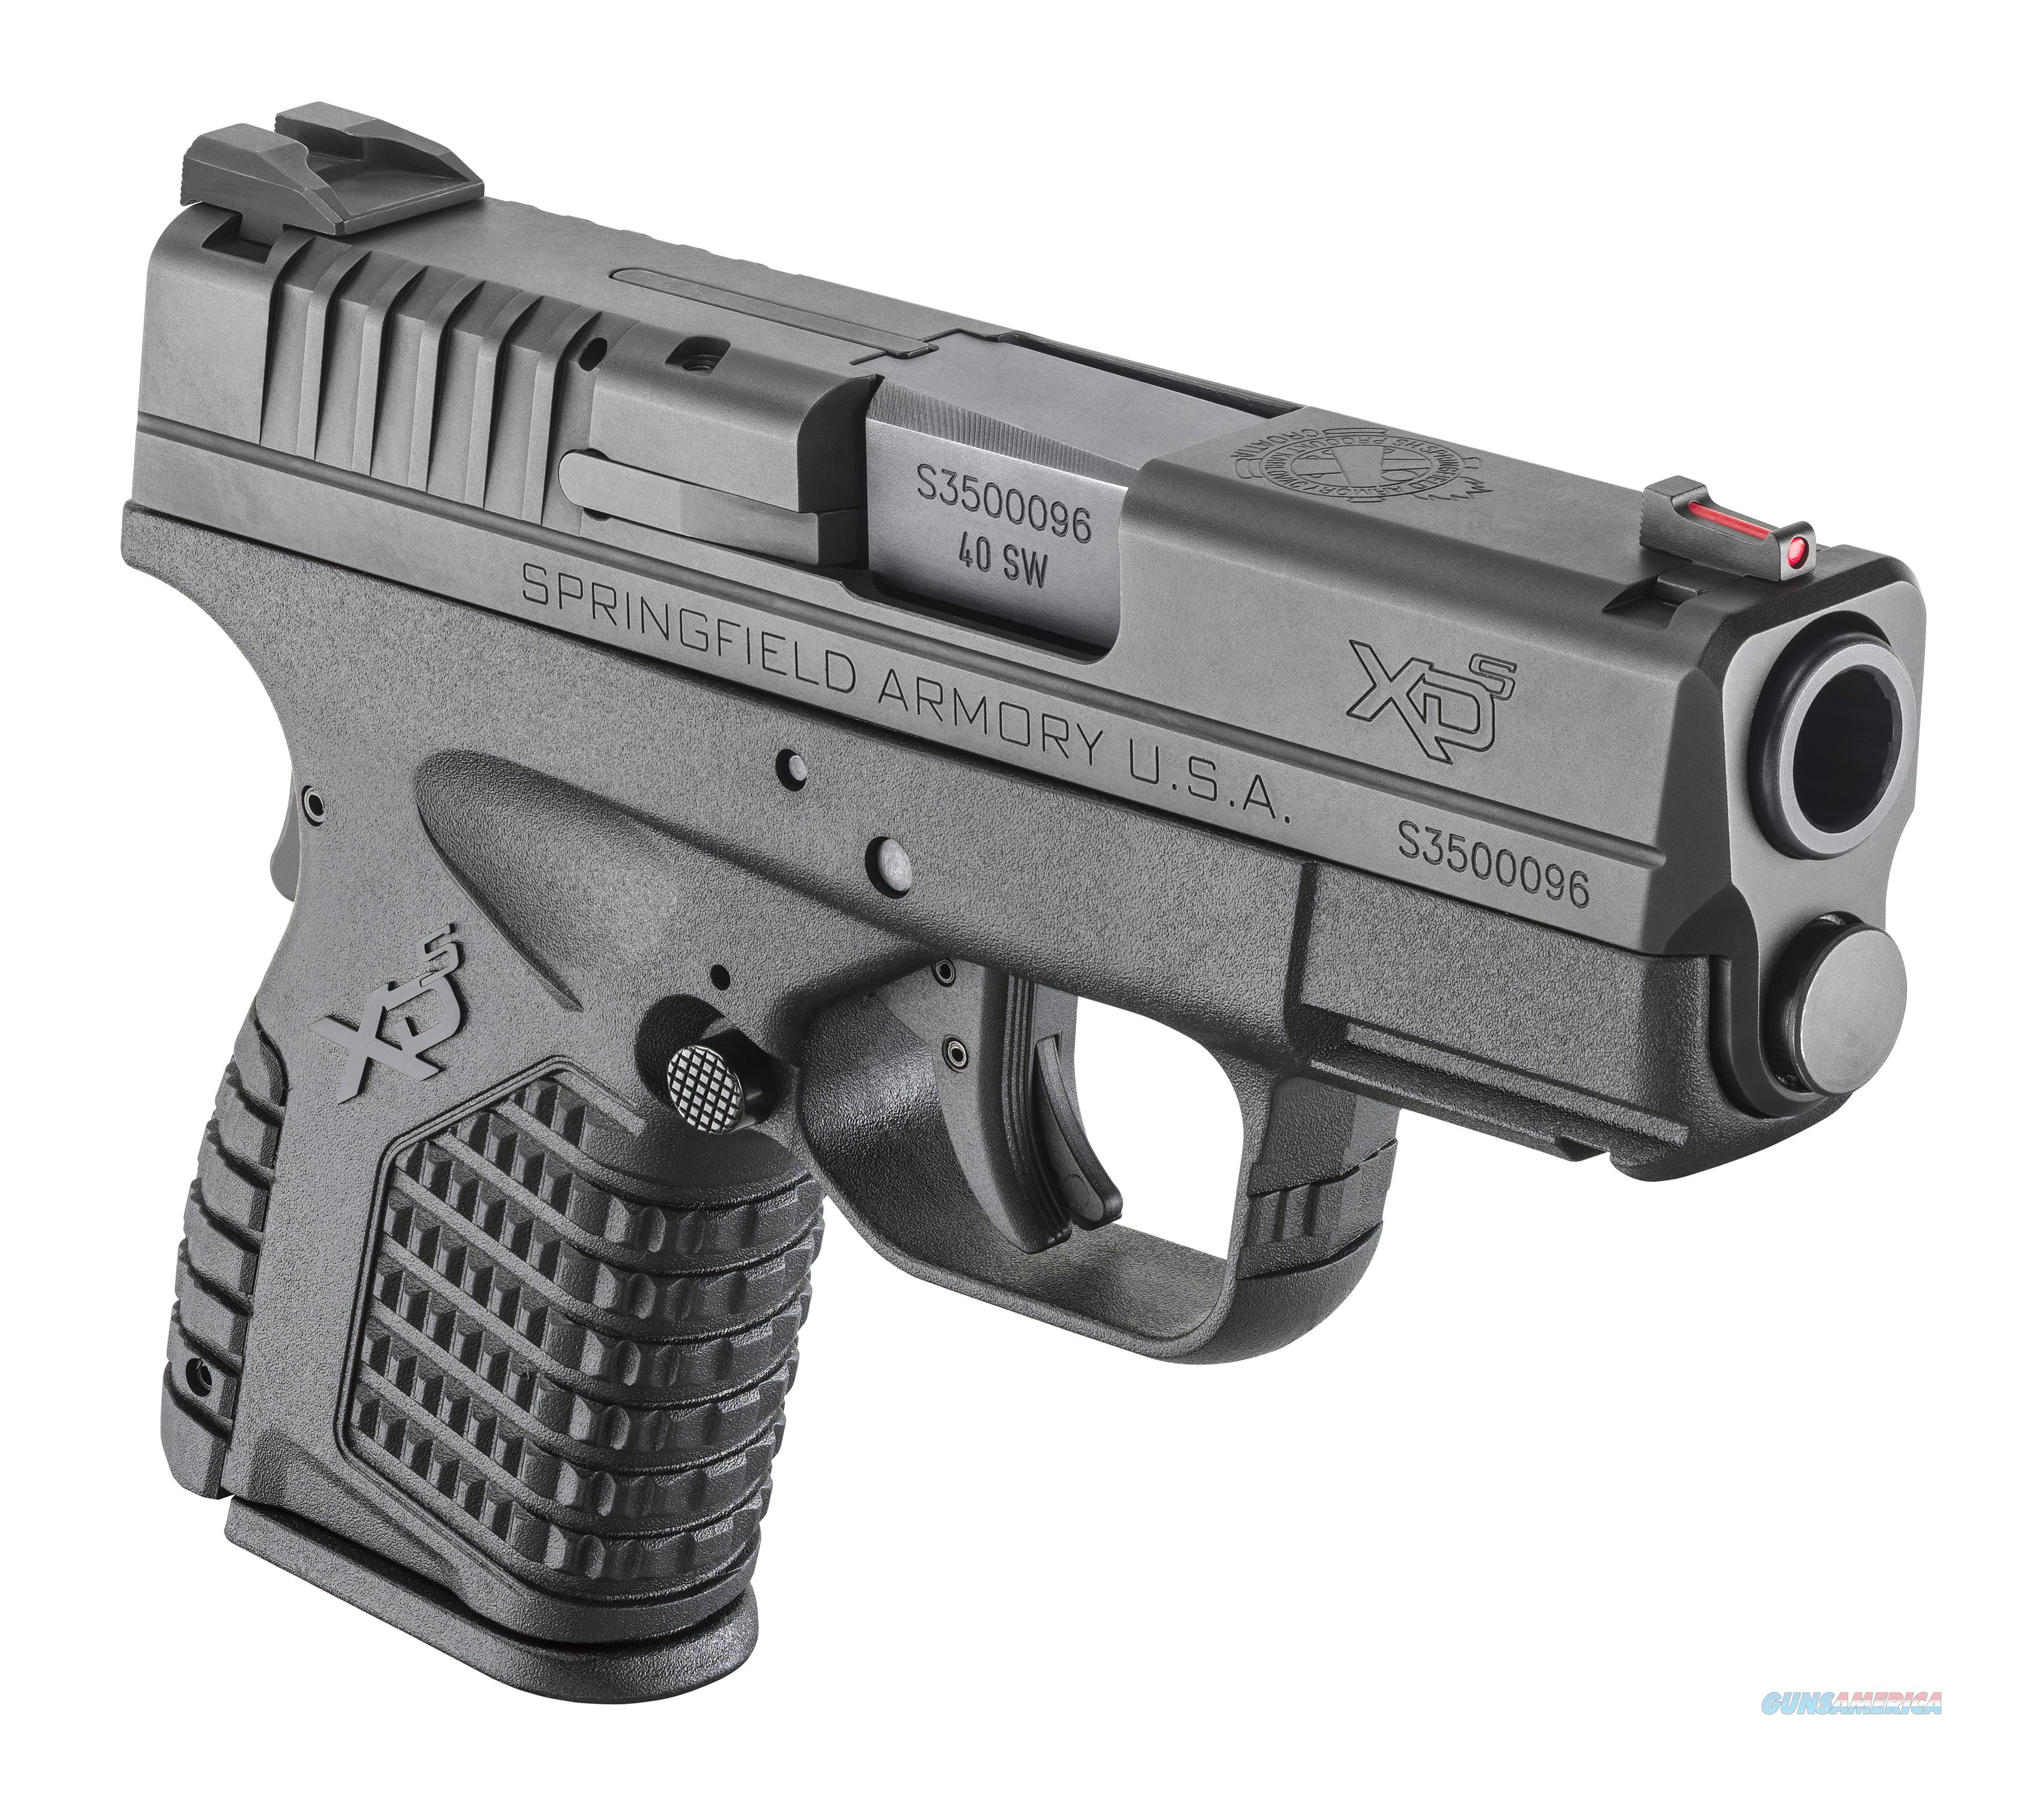 SPRINGFIELD XD-S 40 S&W #XDS93340BE SINGLE STACK NEW IN BOX  Guns > Pistols > Springfield Armory Pistols > XD-S